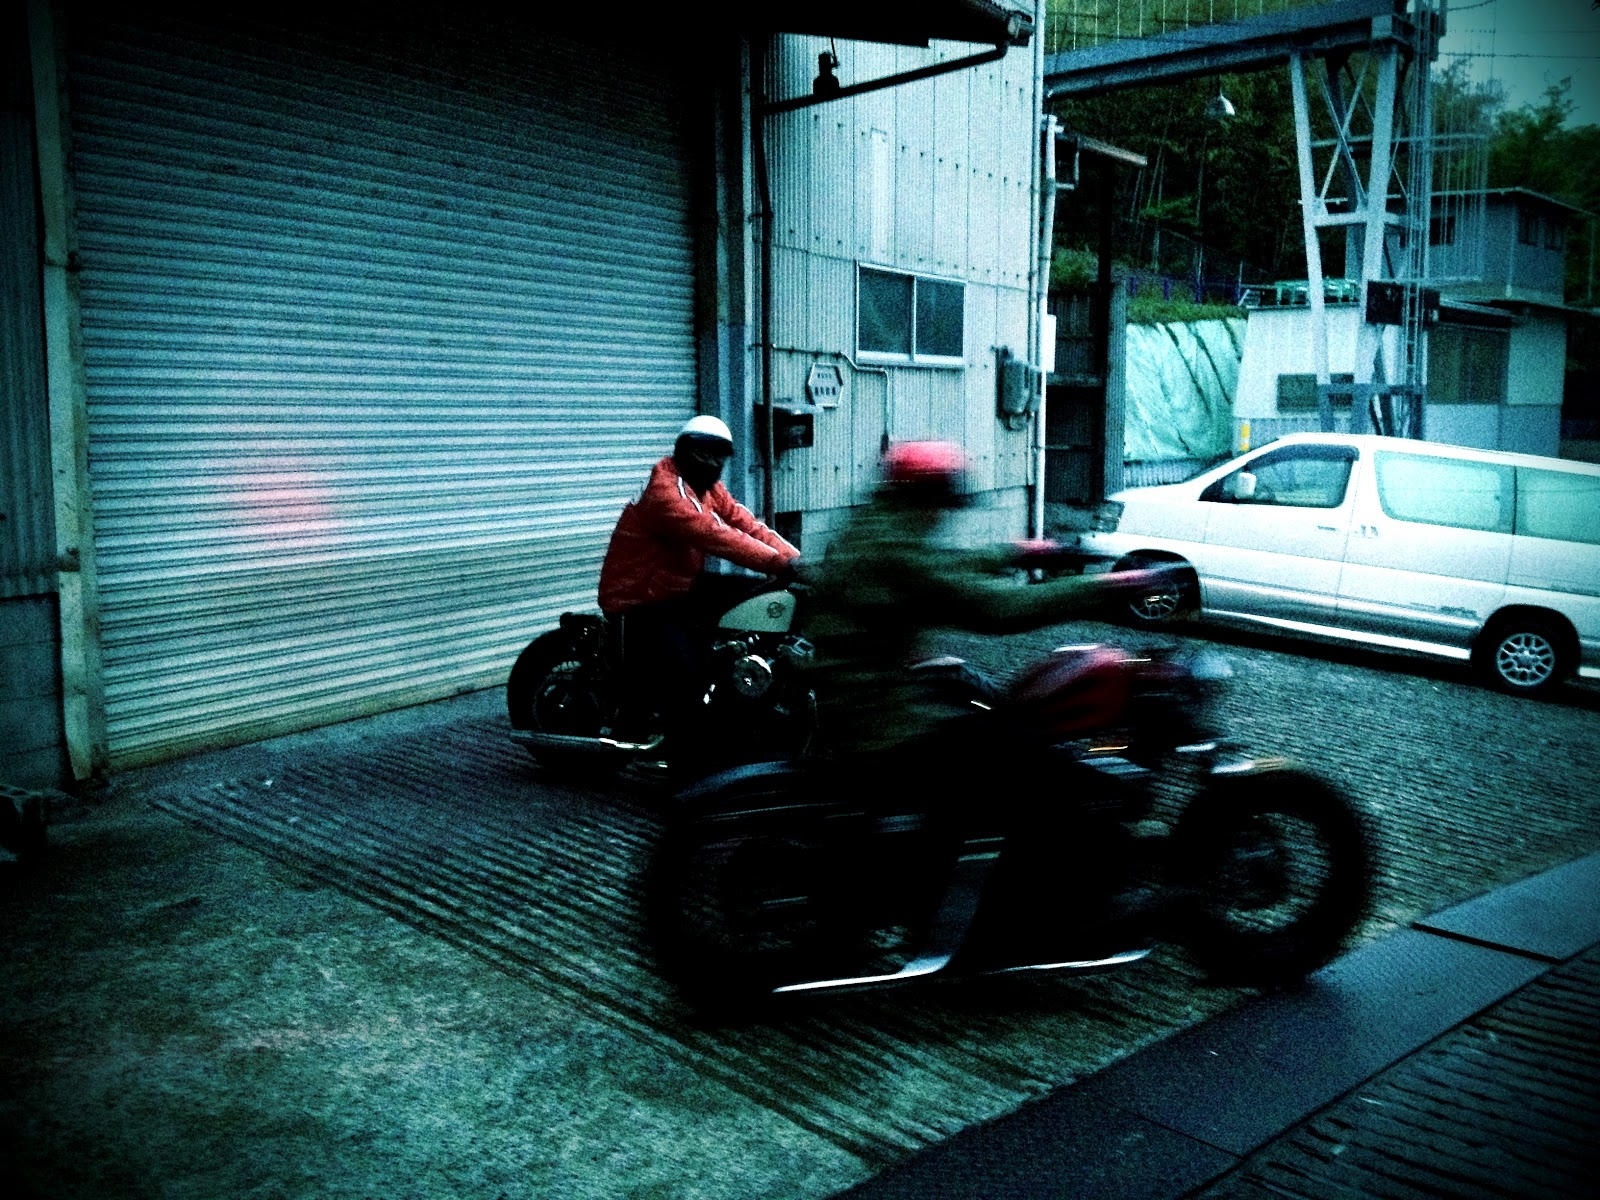 Cyclops Motorcycles